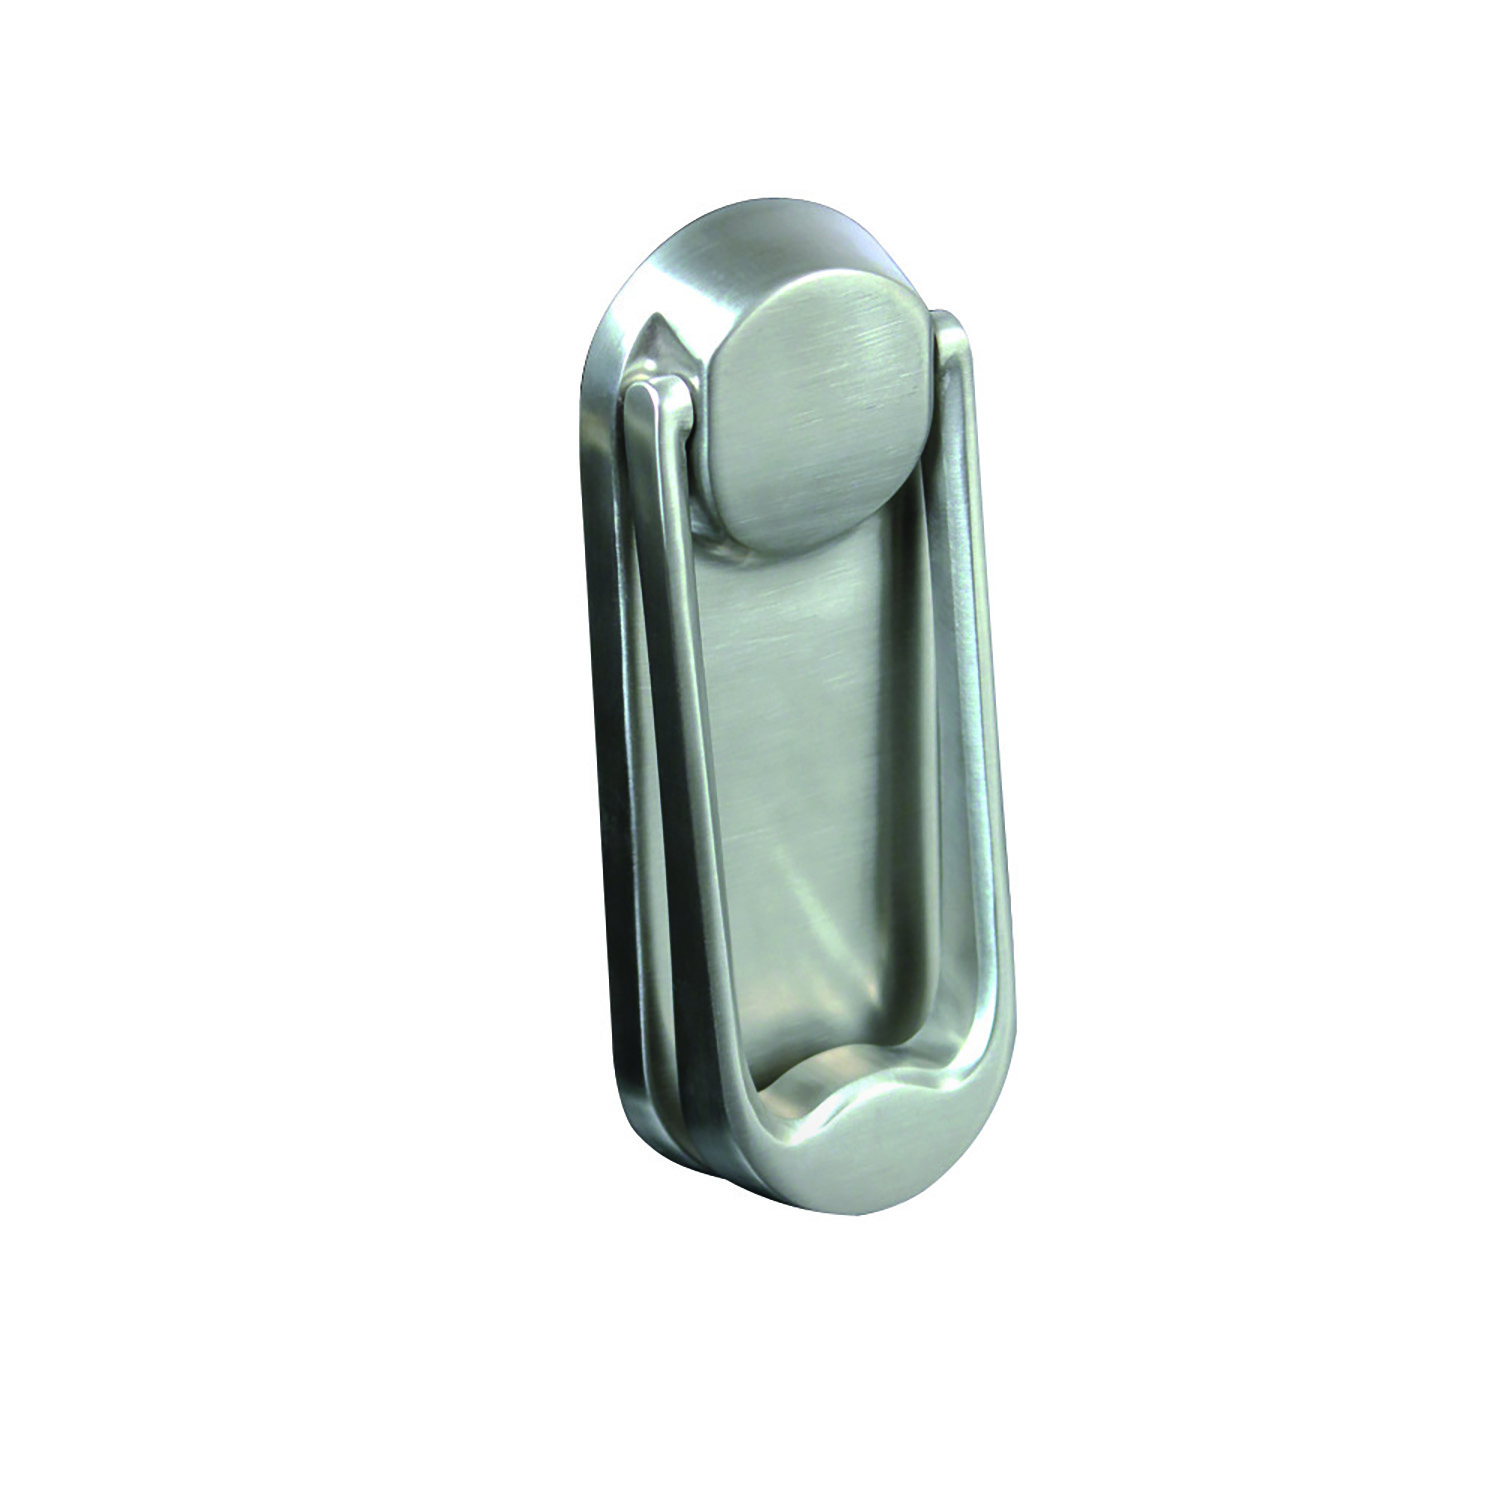 Ingot Door Knocker